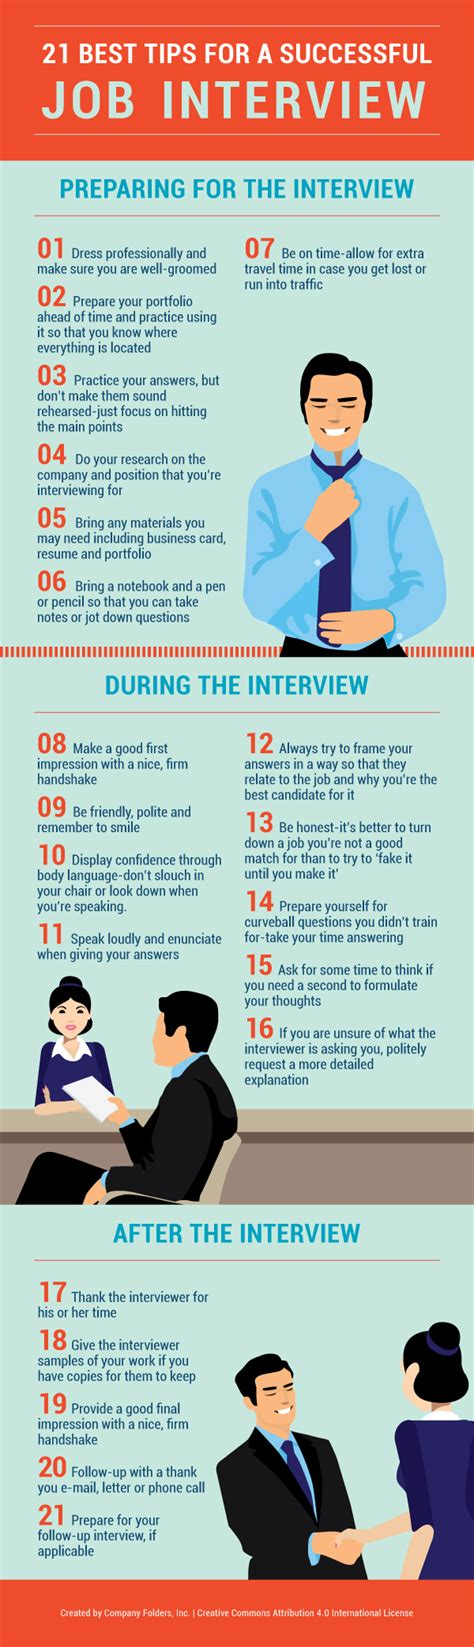 21 Tips for a Successful Job Interview [Infographic]The ...